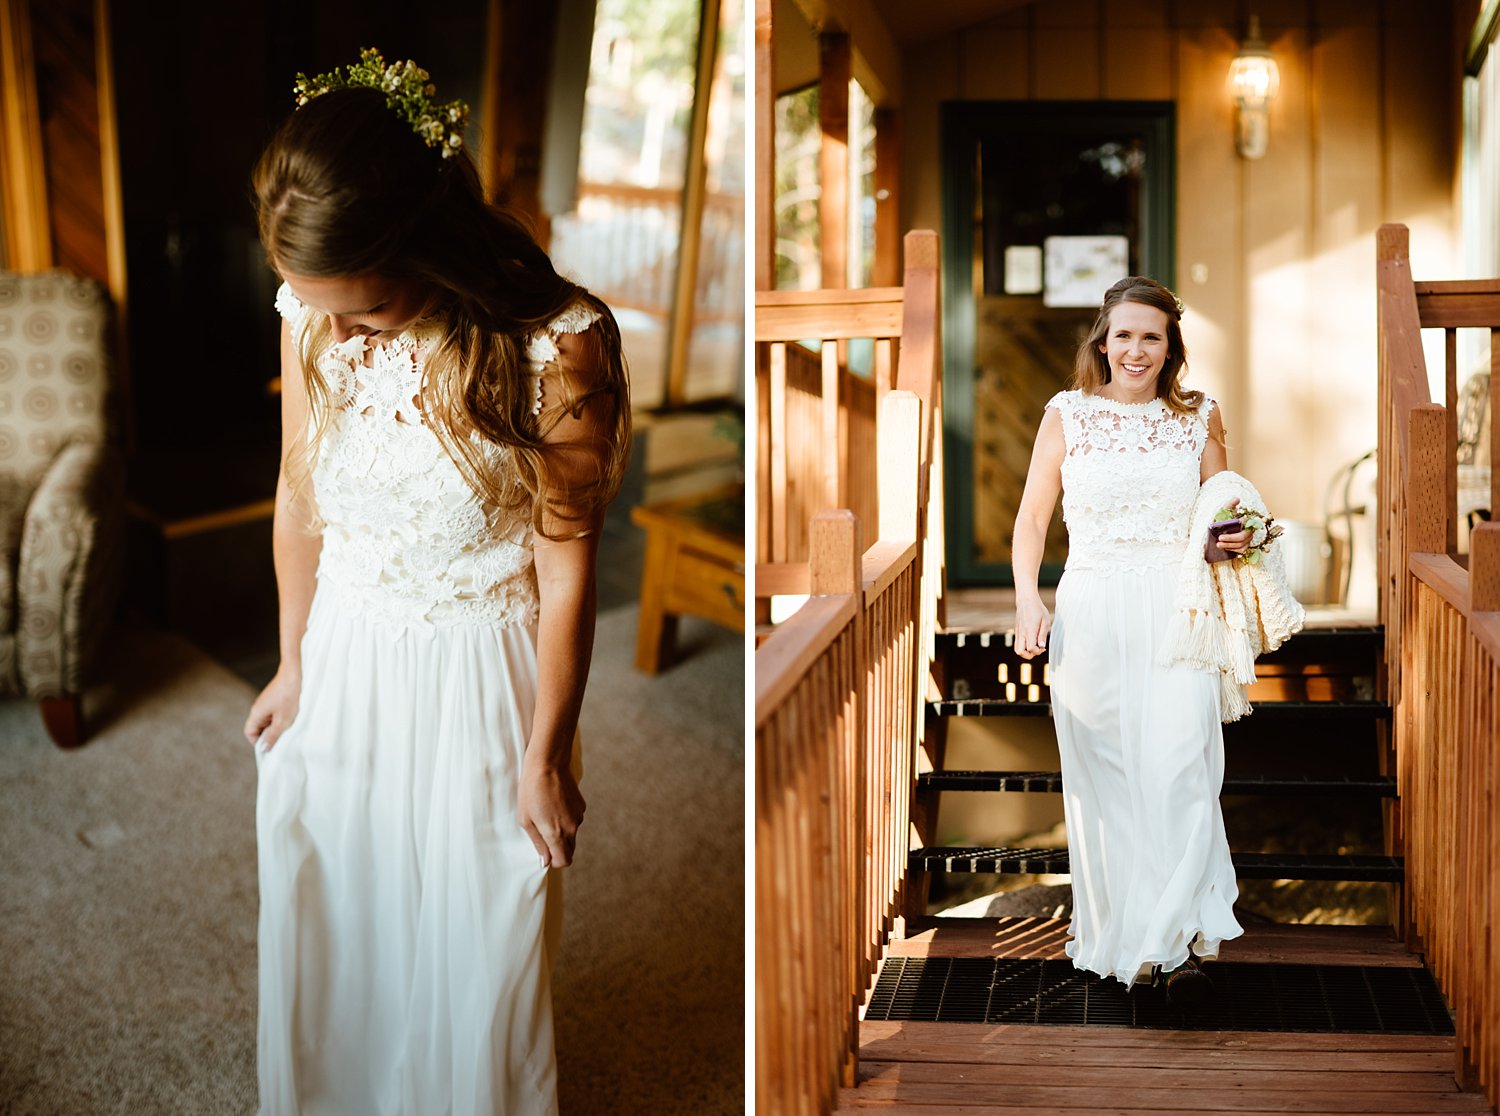 Such a cute lace top wedding dress! So perfectly flowy for hiking wedding! | Mountain elopement photos by Colorado wedding photographer, Maddie Mae.